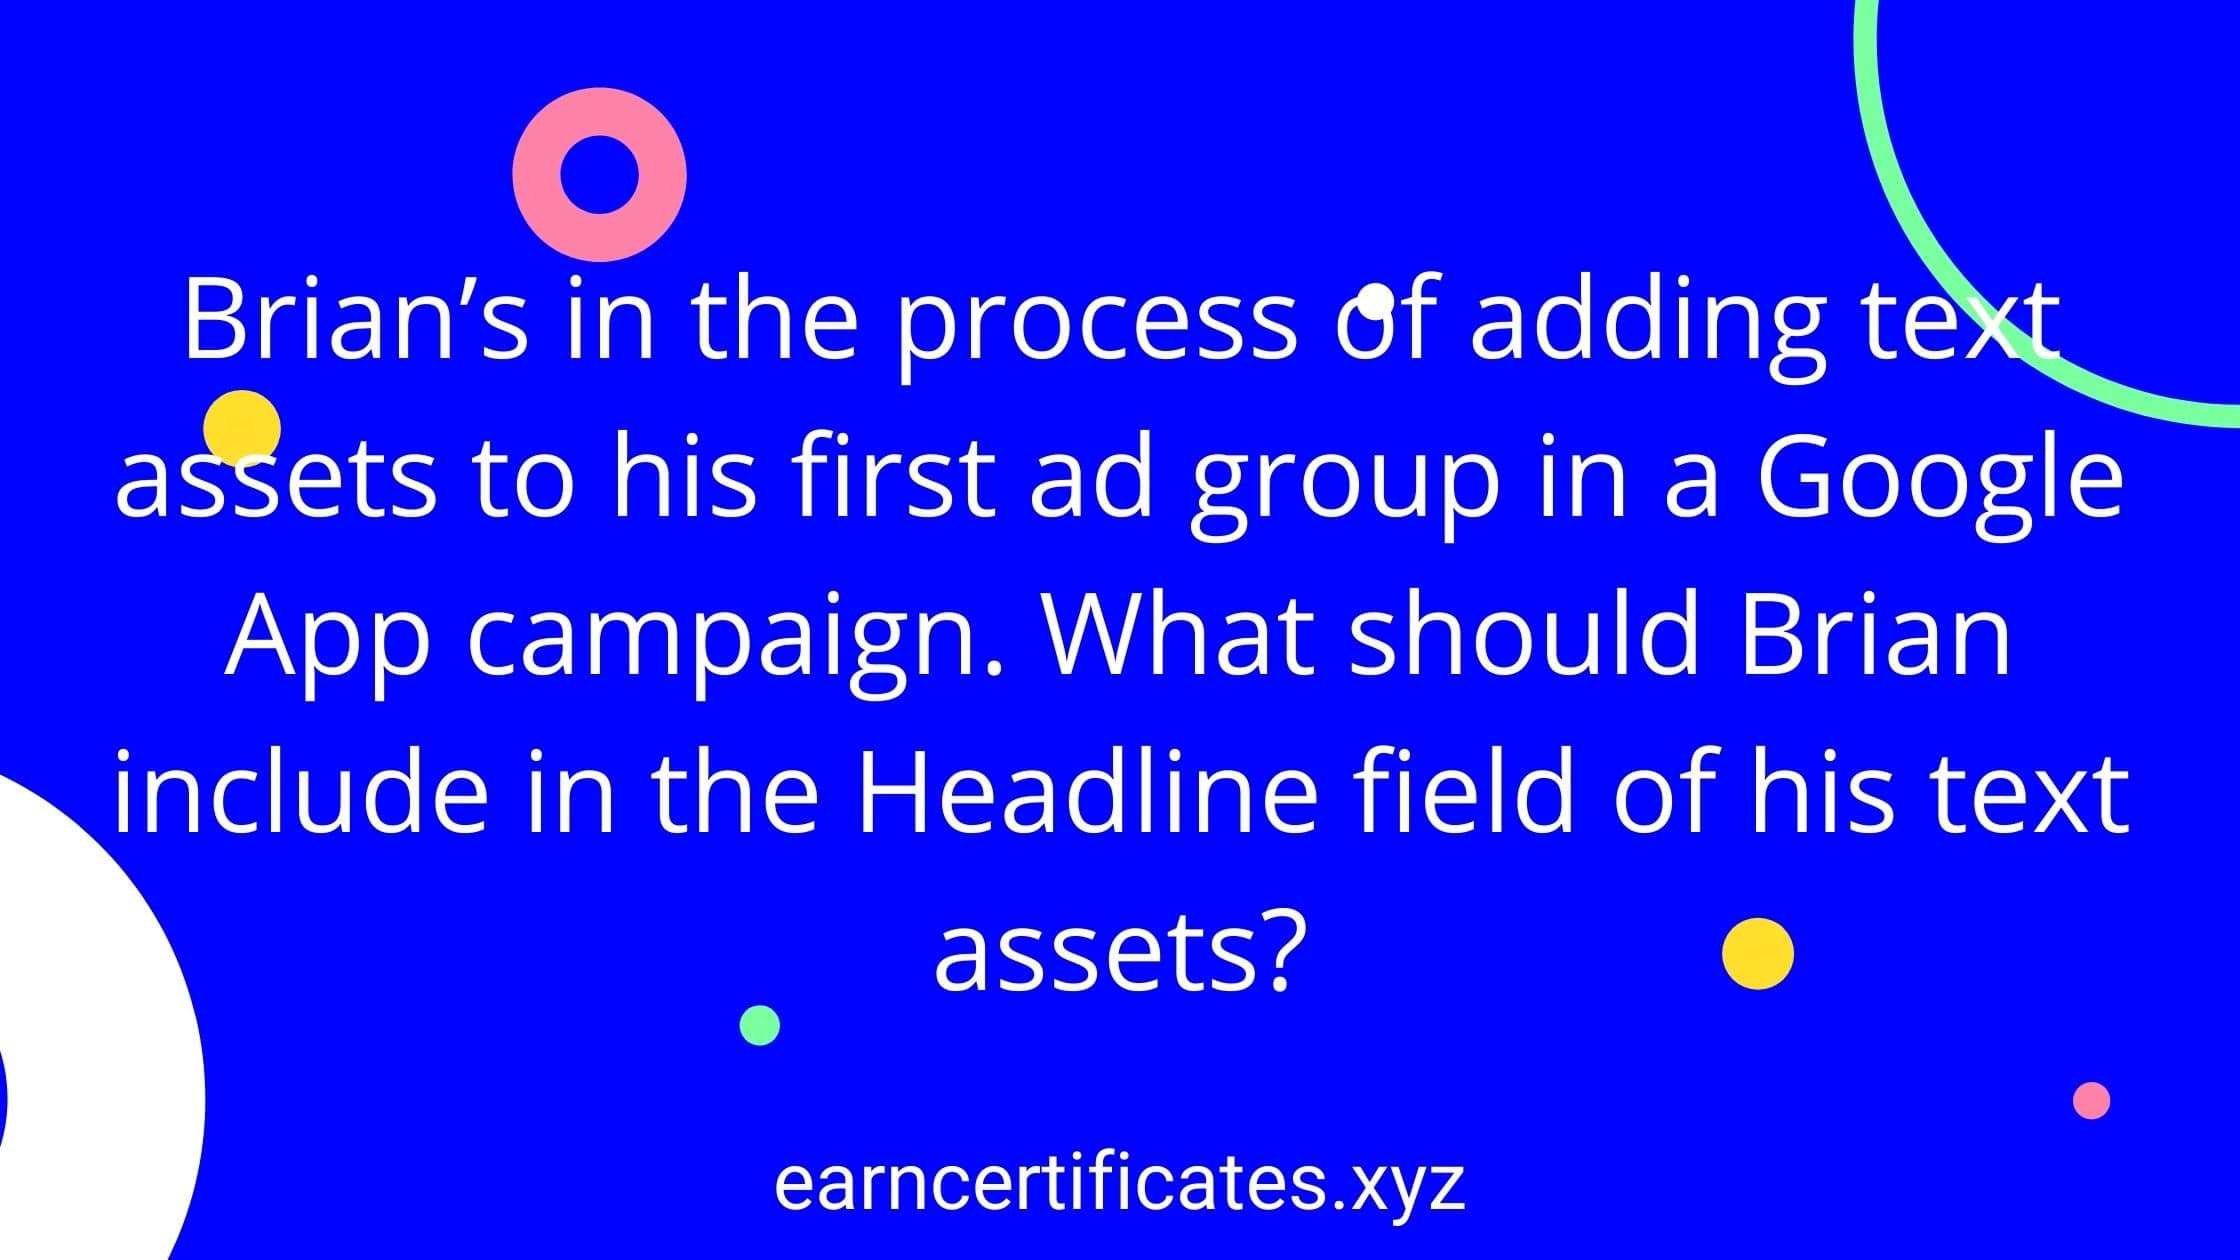 Brian's in the process of adding text assets to his first ad group in a Google App campaign. What should Brian include in the Headline field of his text assets?